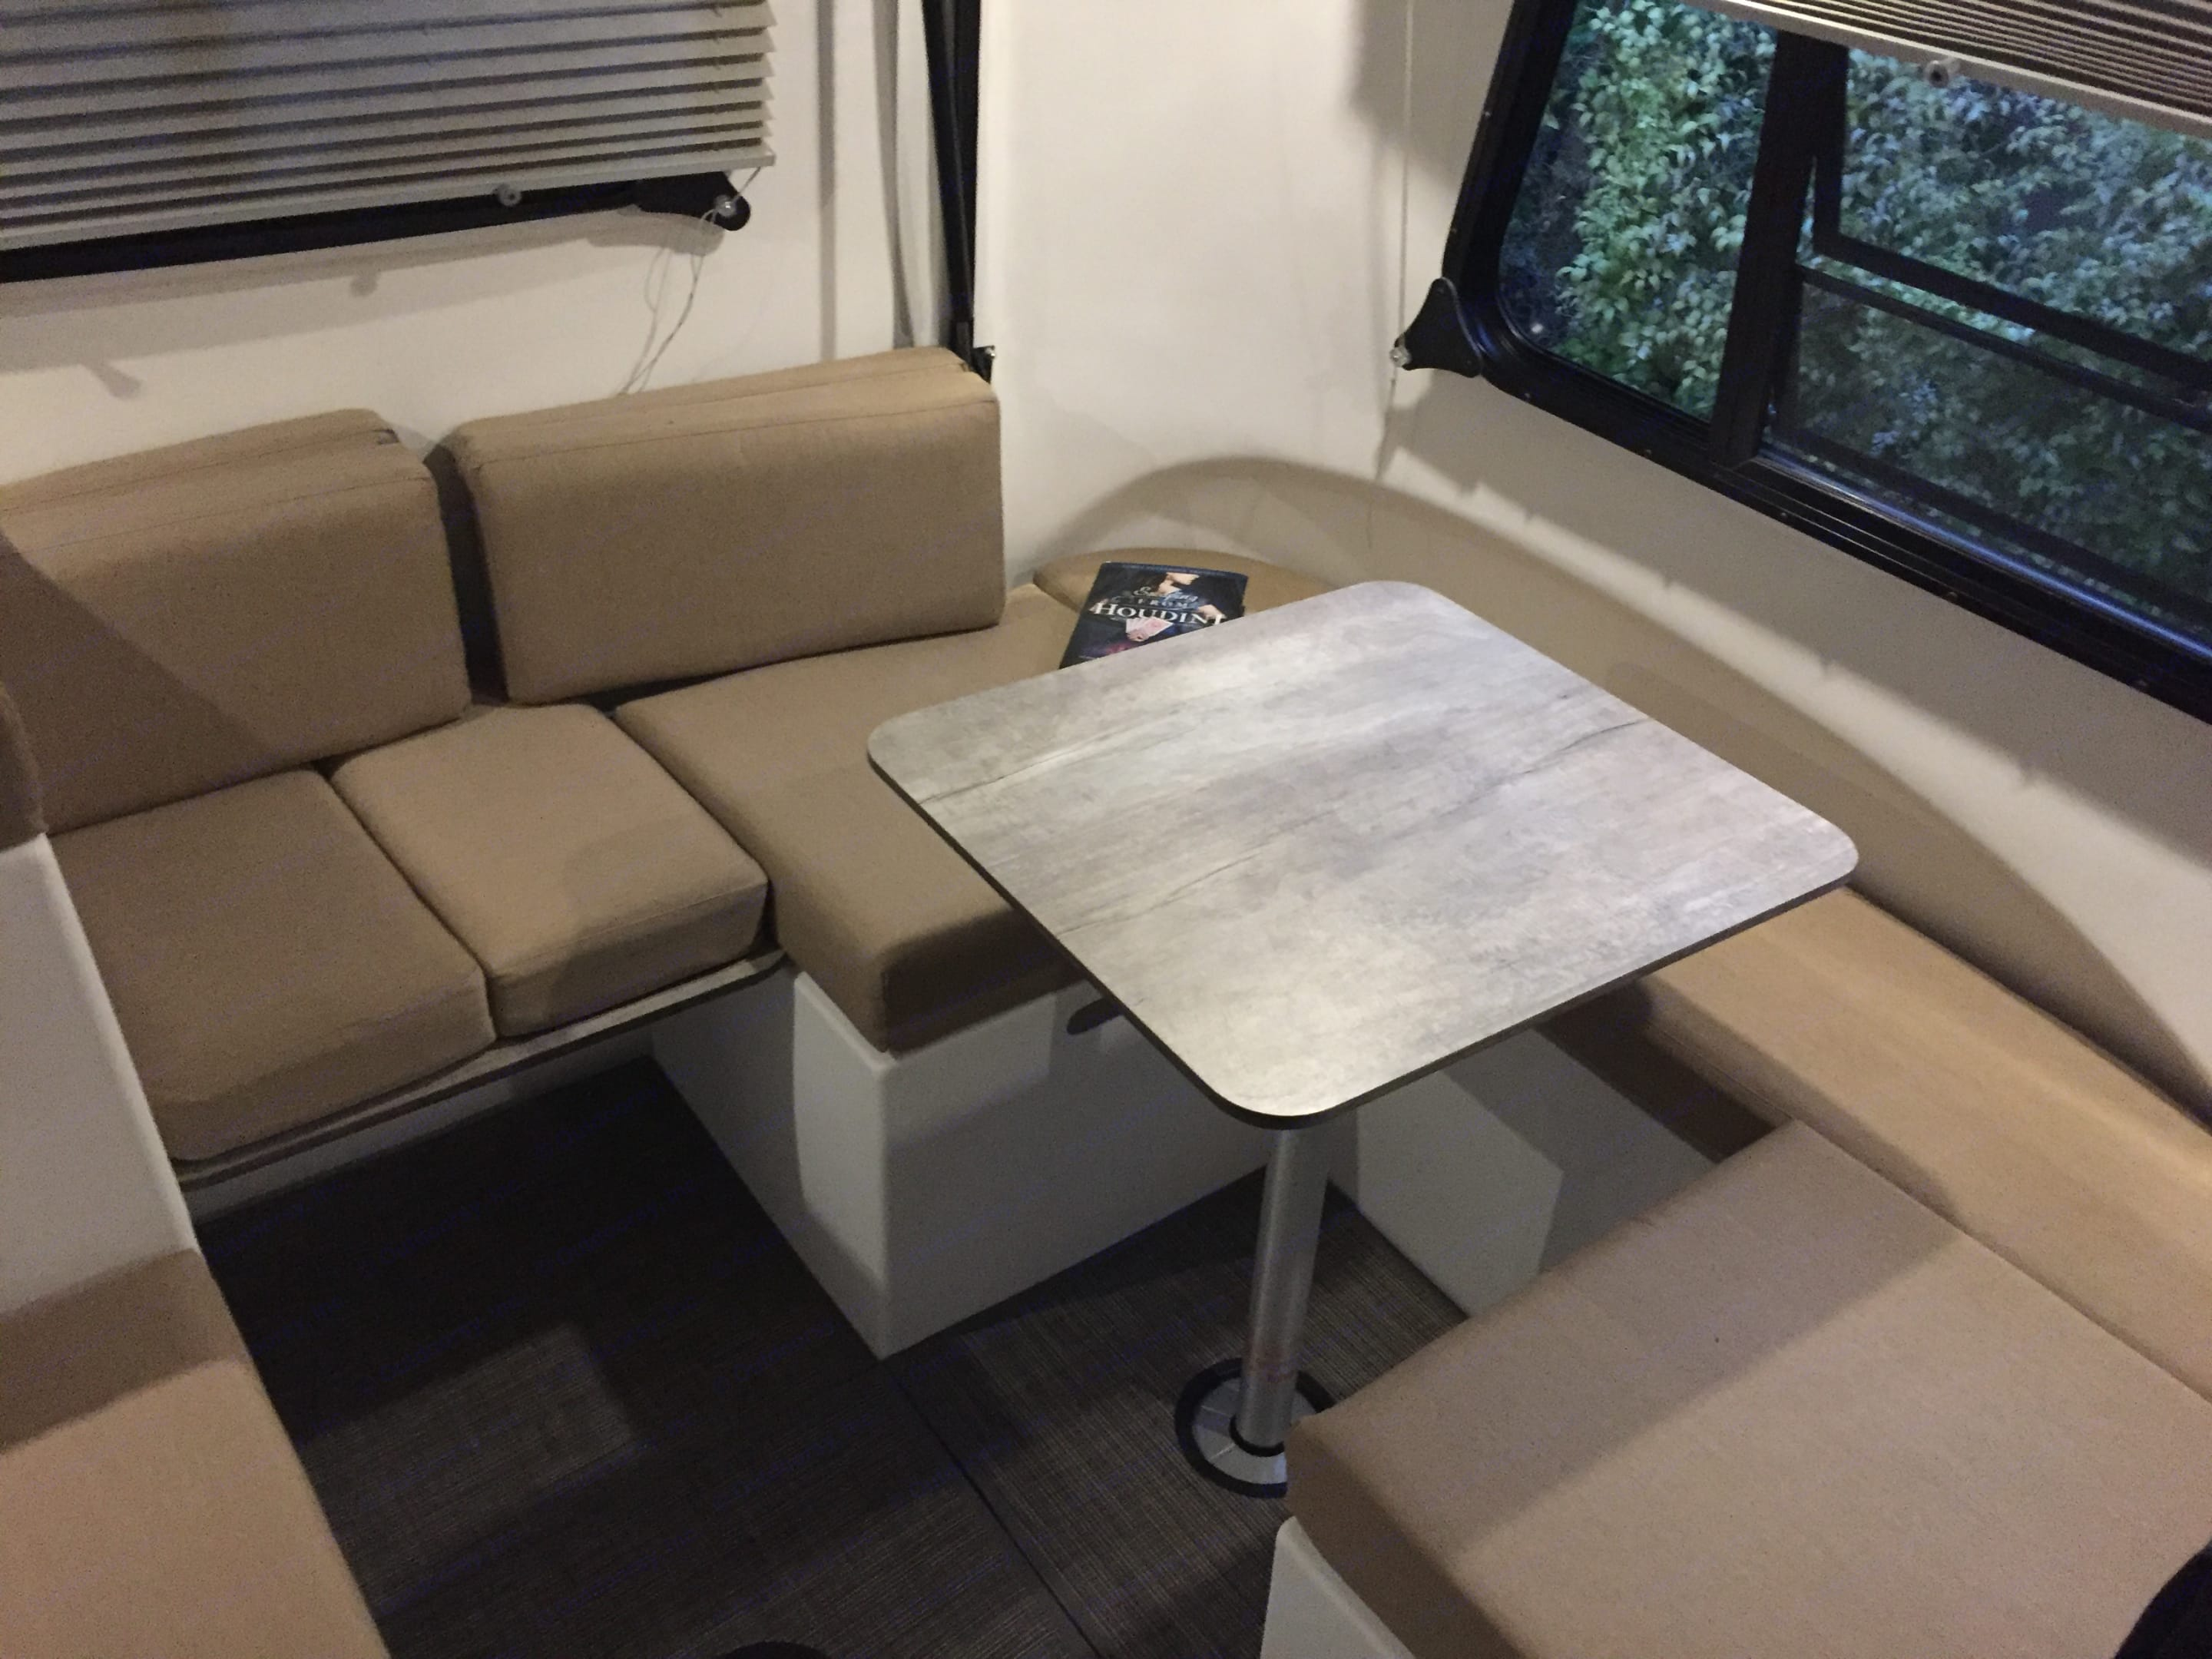 Modular seats and tables moved to a side table with lounge area (this is the queen sized sleeping area at the back). Want more table space? This is only one of four tables. Move them around and have fun creating your own space.. happier camper HC1 2019